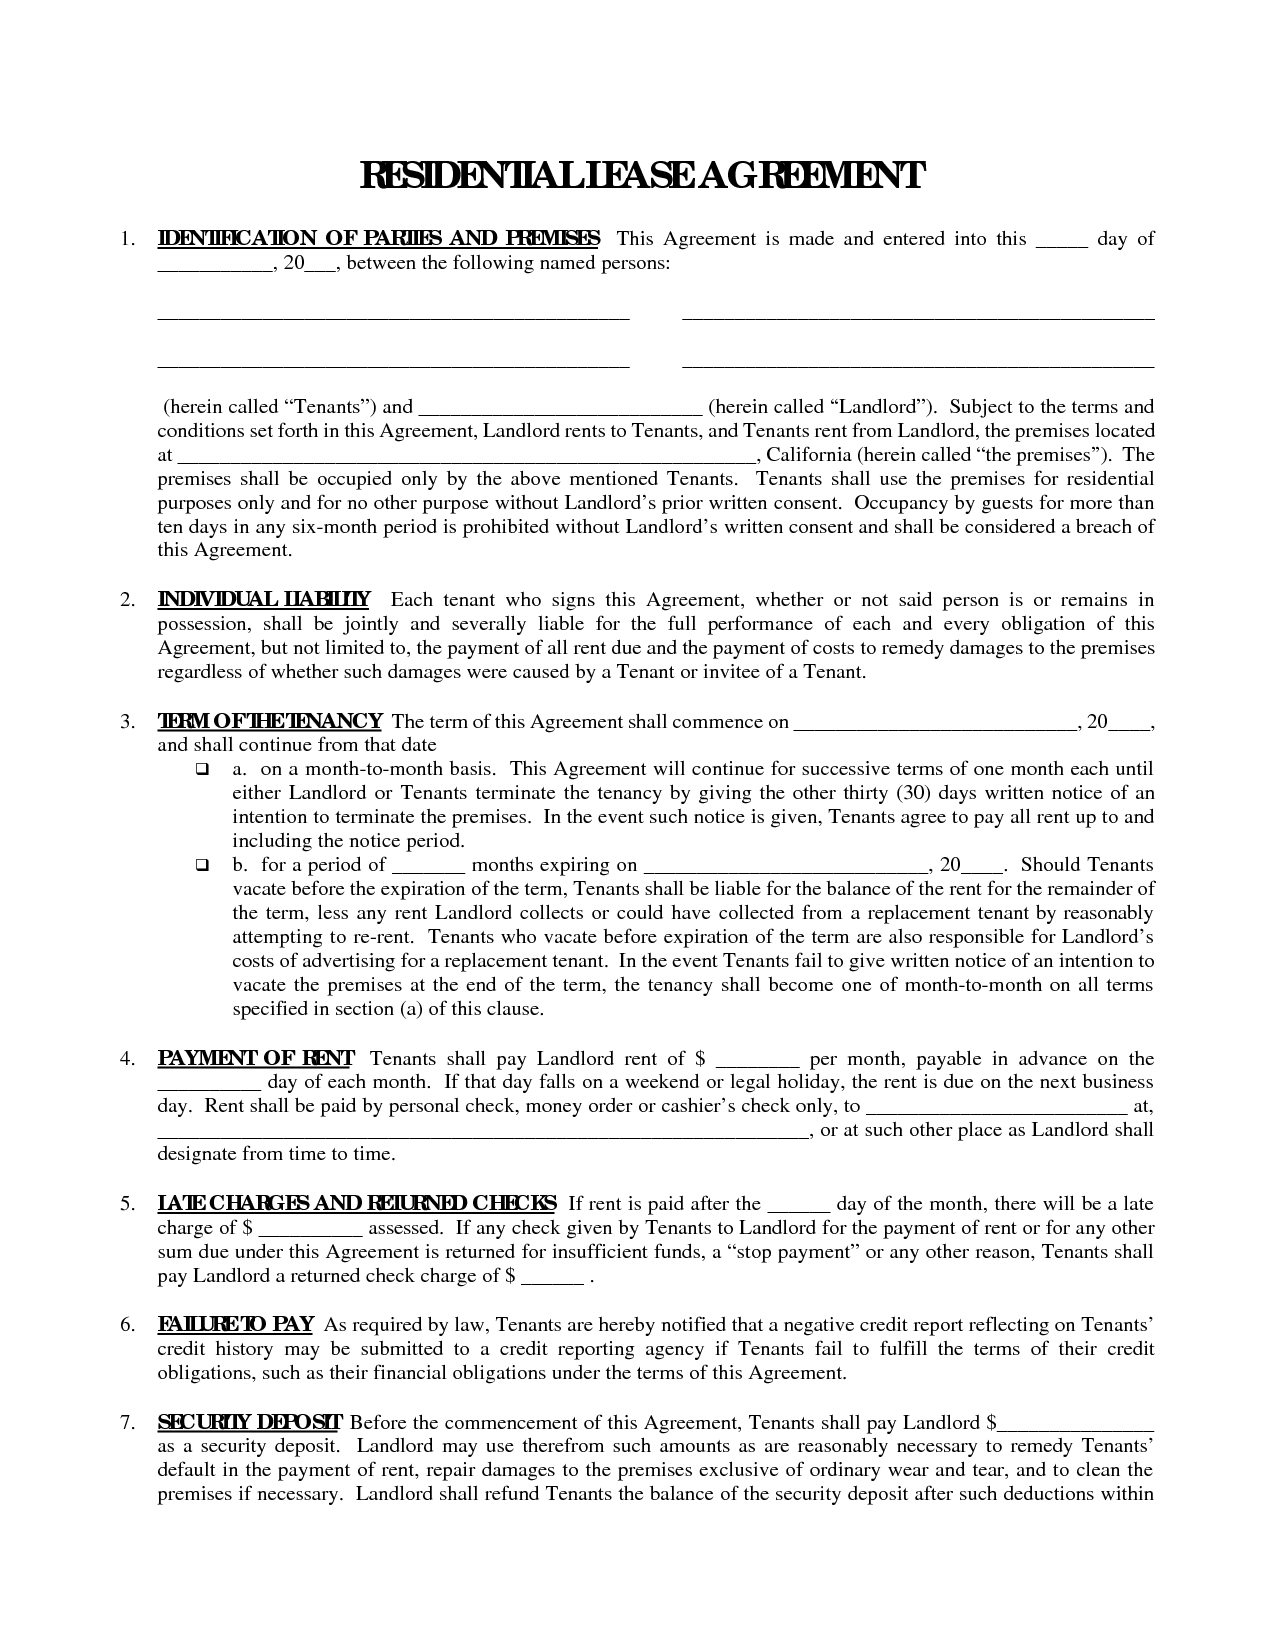 Printable Residential Free House Lease Agreement | Residential Lease - Free Printable Lease